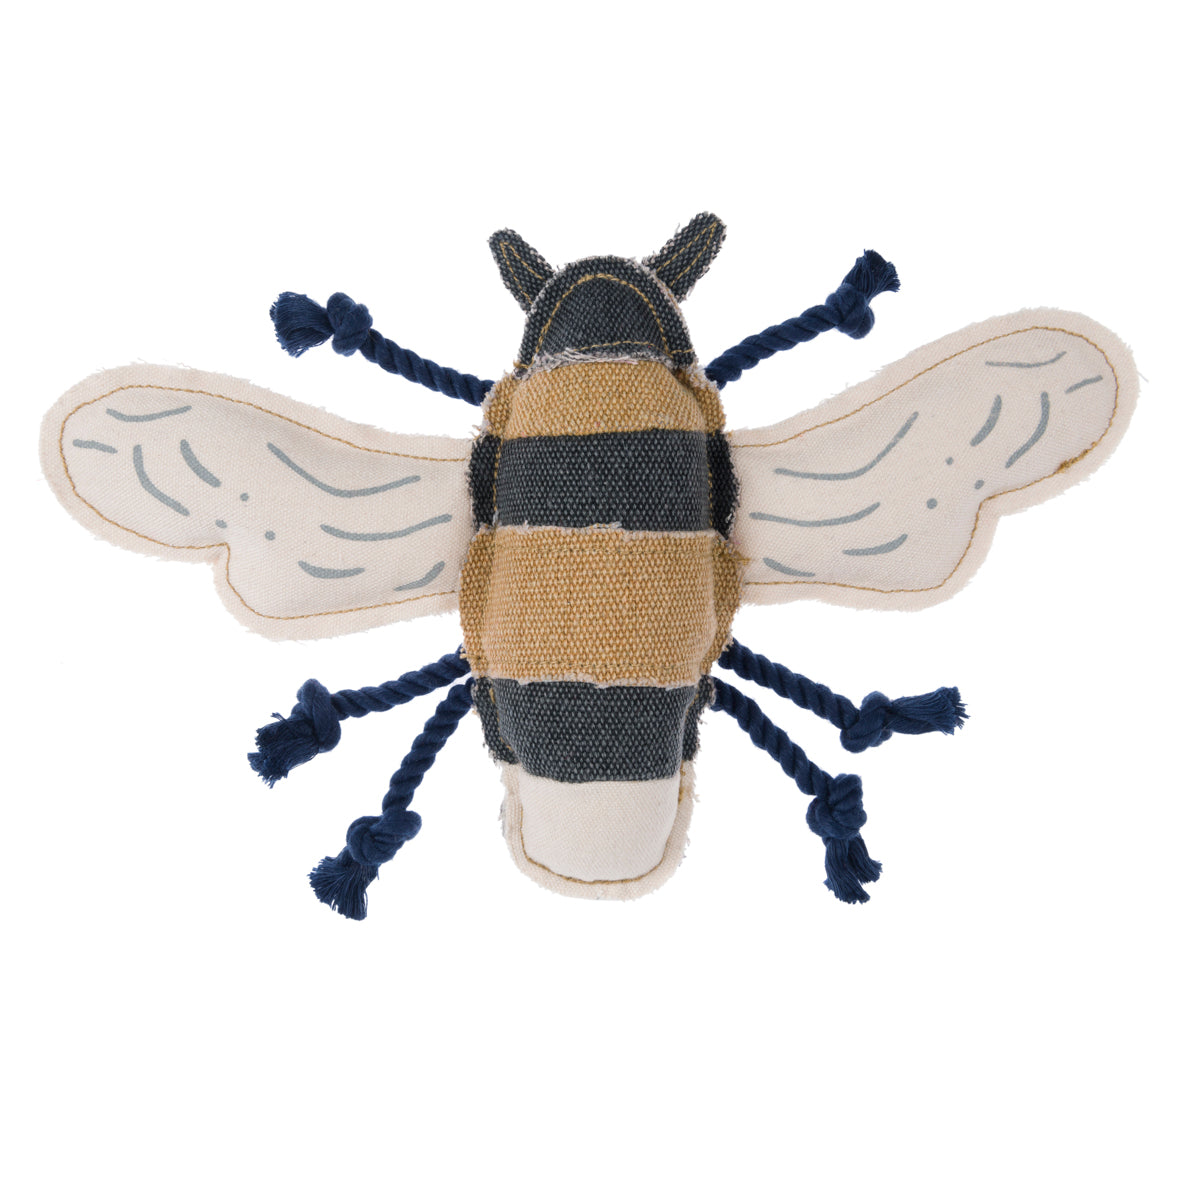 Dog toy shaped as a bee with rope legs by Sophie Allport